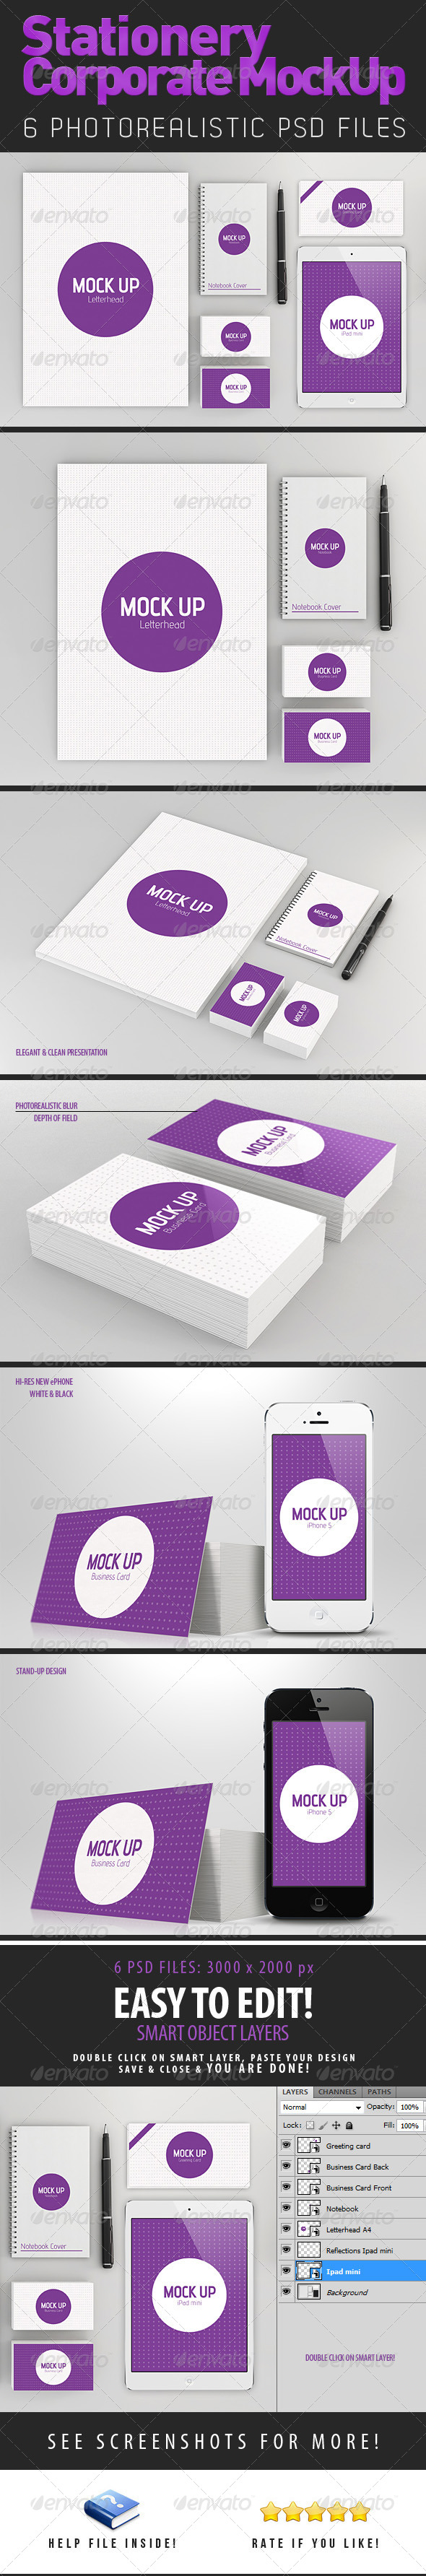 Stationery Branding Mock-Up - Print Product Mock-Ups